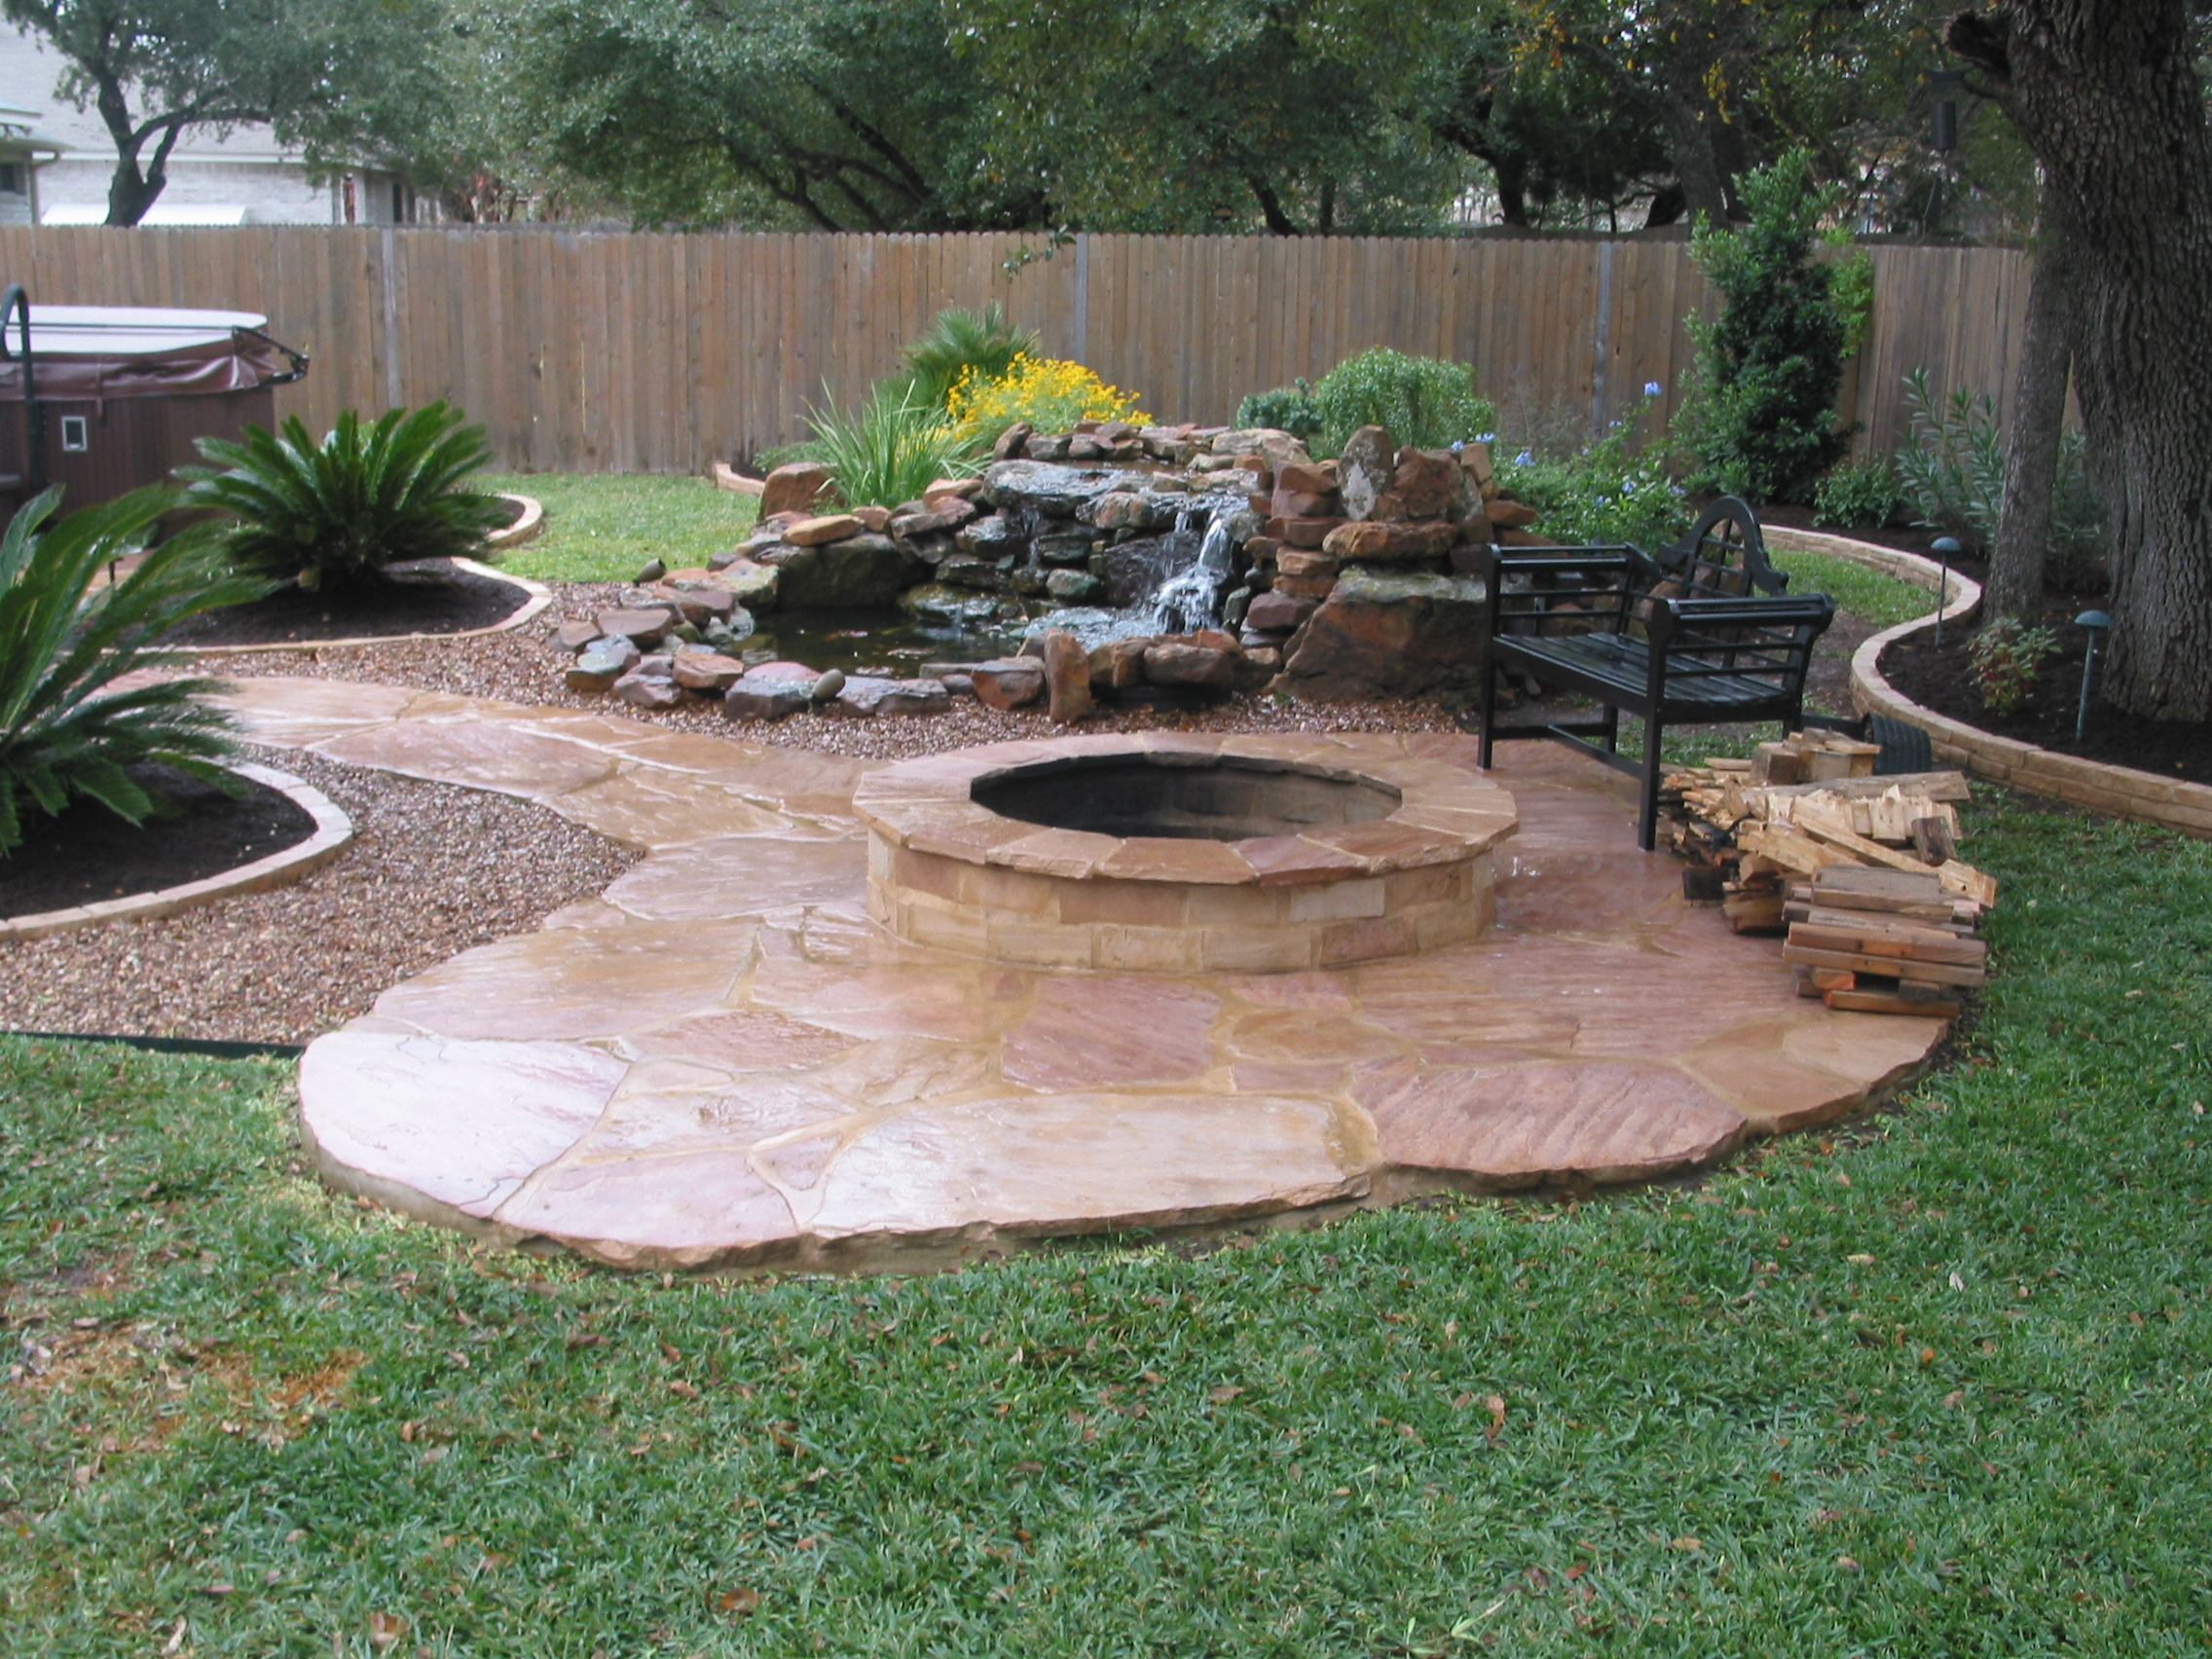 Artistic landscape creations port ludlow wa 98365 for Patio landscape design